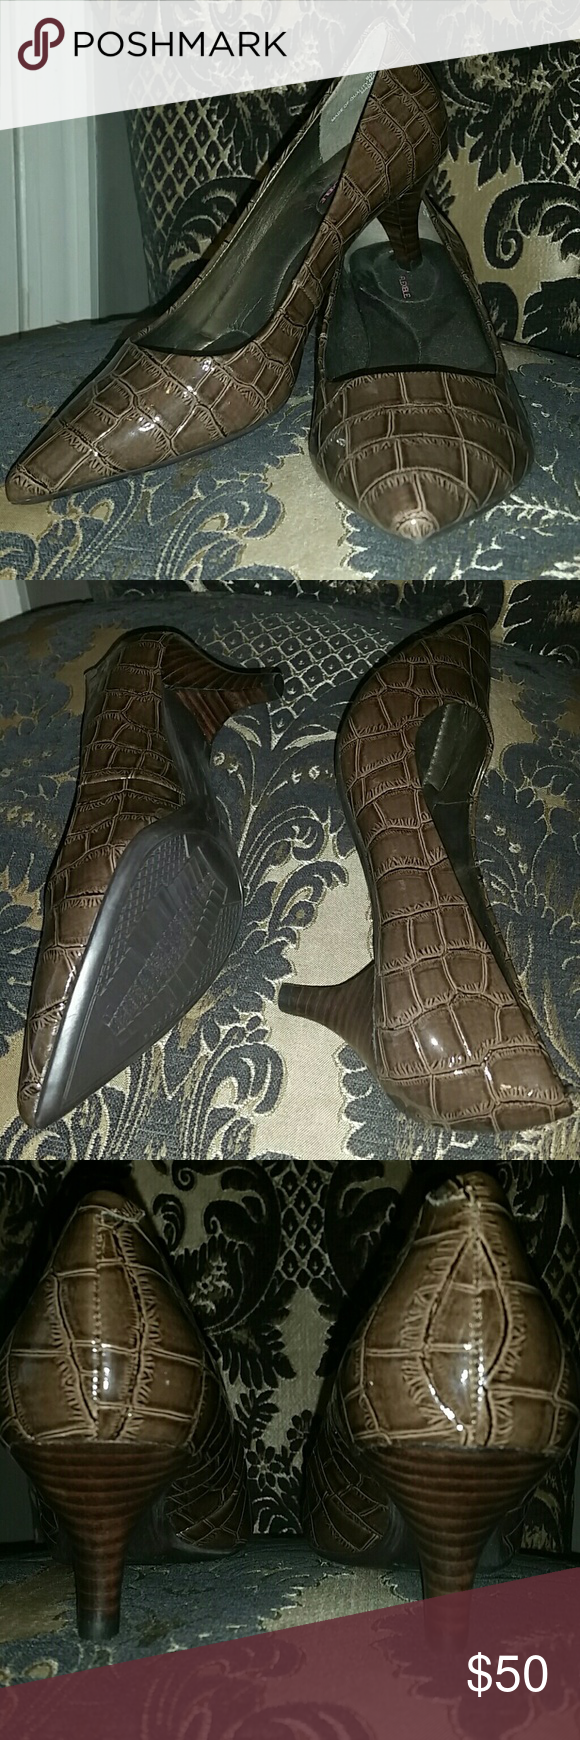 """NWOB Bandolino B-Flexible Heels sz 5.5 Brand new, no box, never worn  Brown, snakeskin embossed pointed toe heel with a low, 2"""" heel, padded insole- built for comfort! I bought these from a store closing event and grabbed the wrong size for myself because the box was mismarked. Bandolino Shoes Heels"""